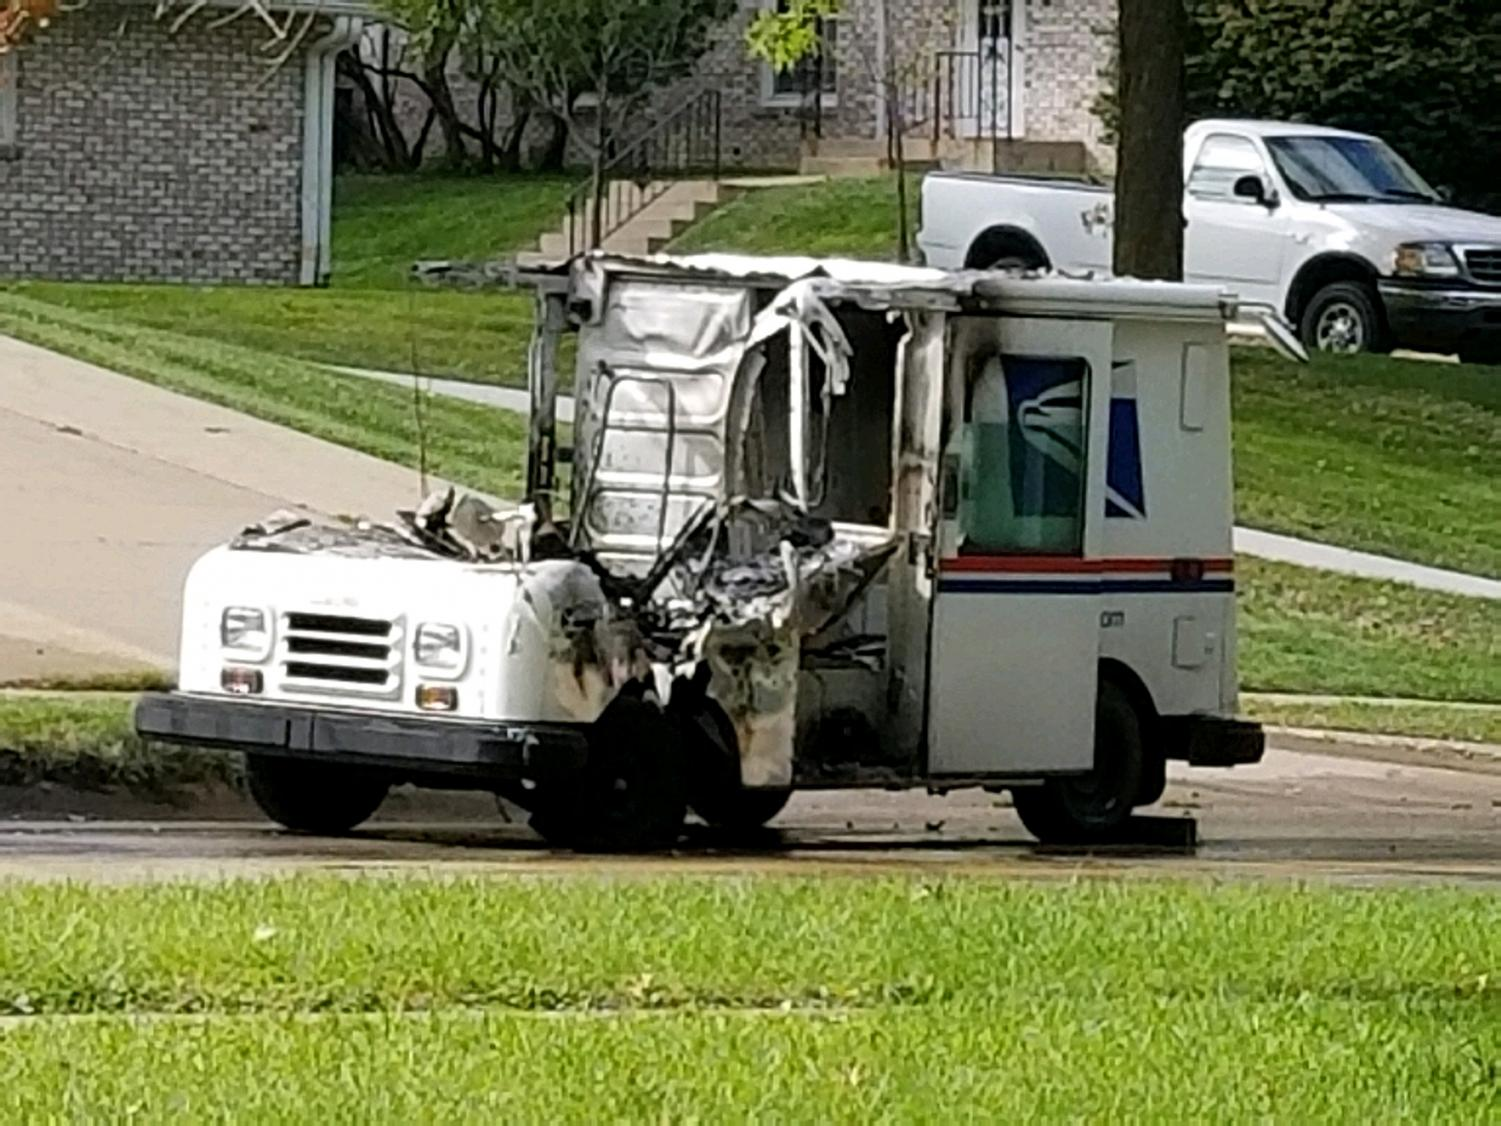 A mail truck is seen after catching fire on Sept. 24 at 2:45 p.m. on N. First Avenue.